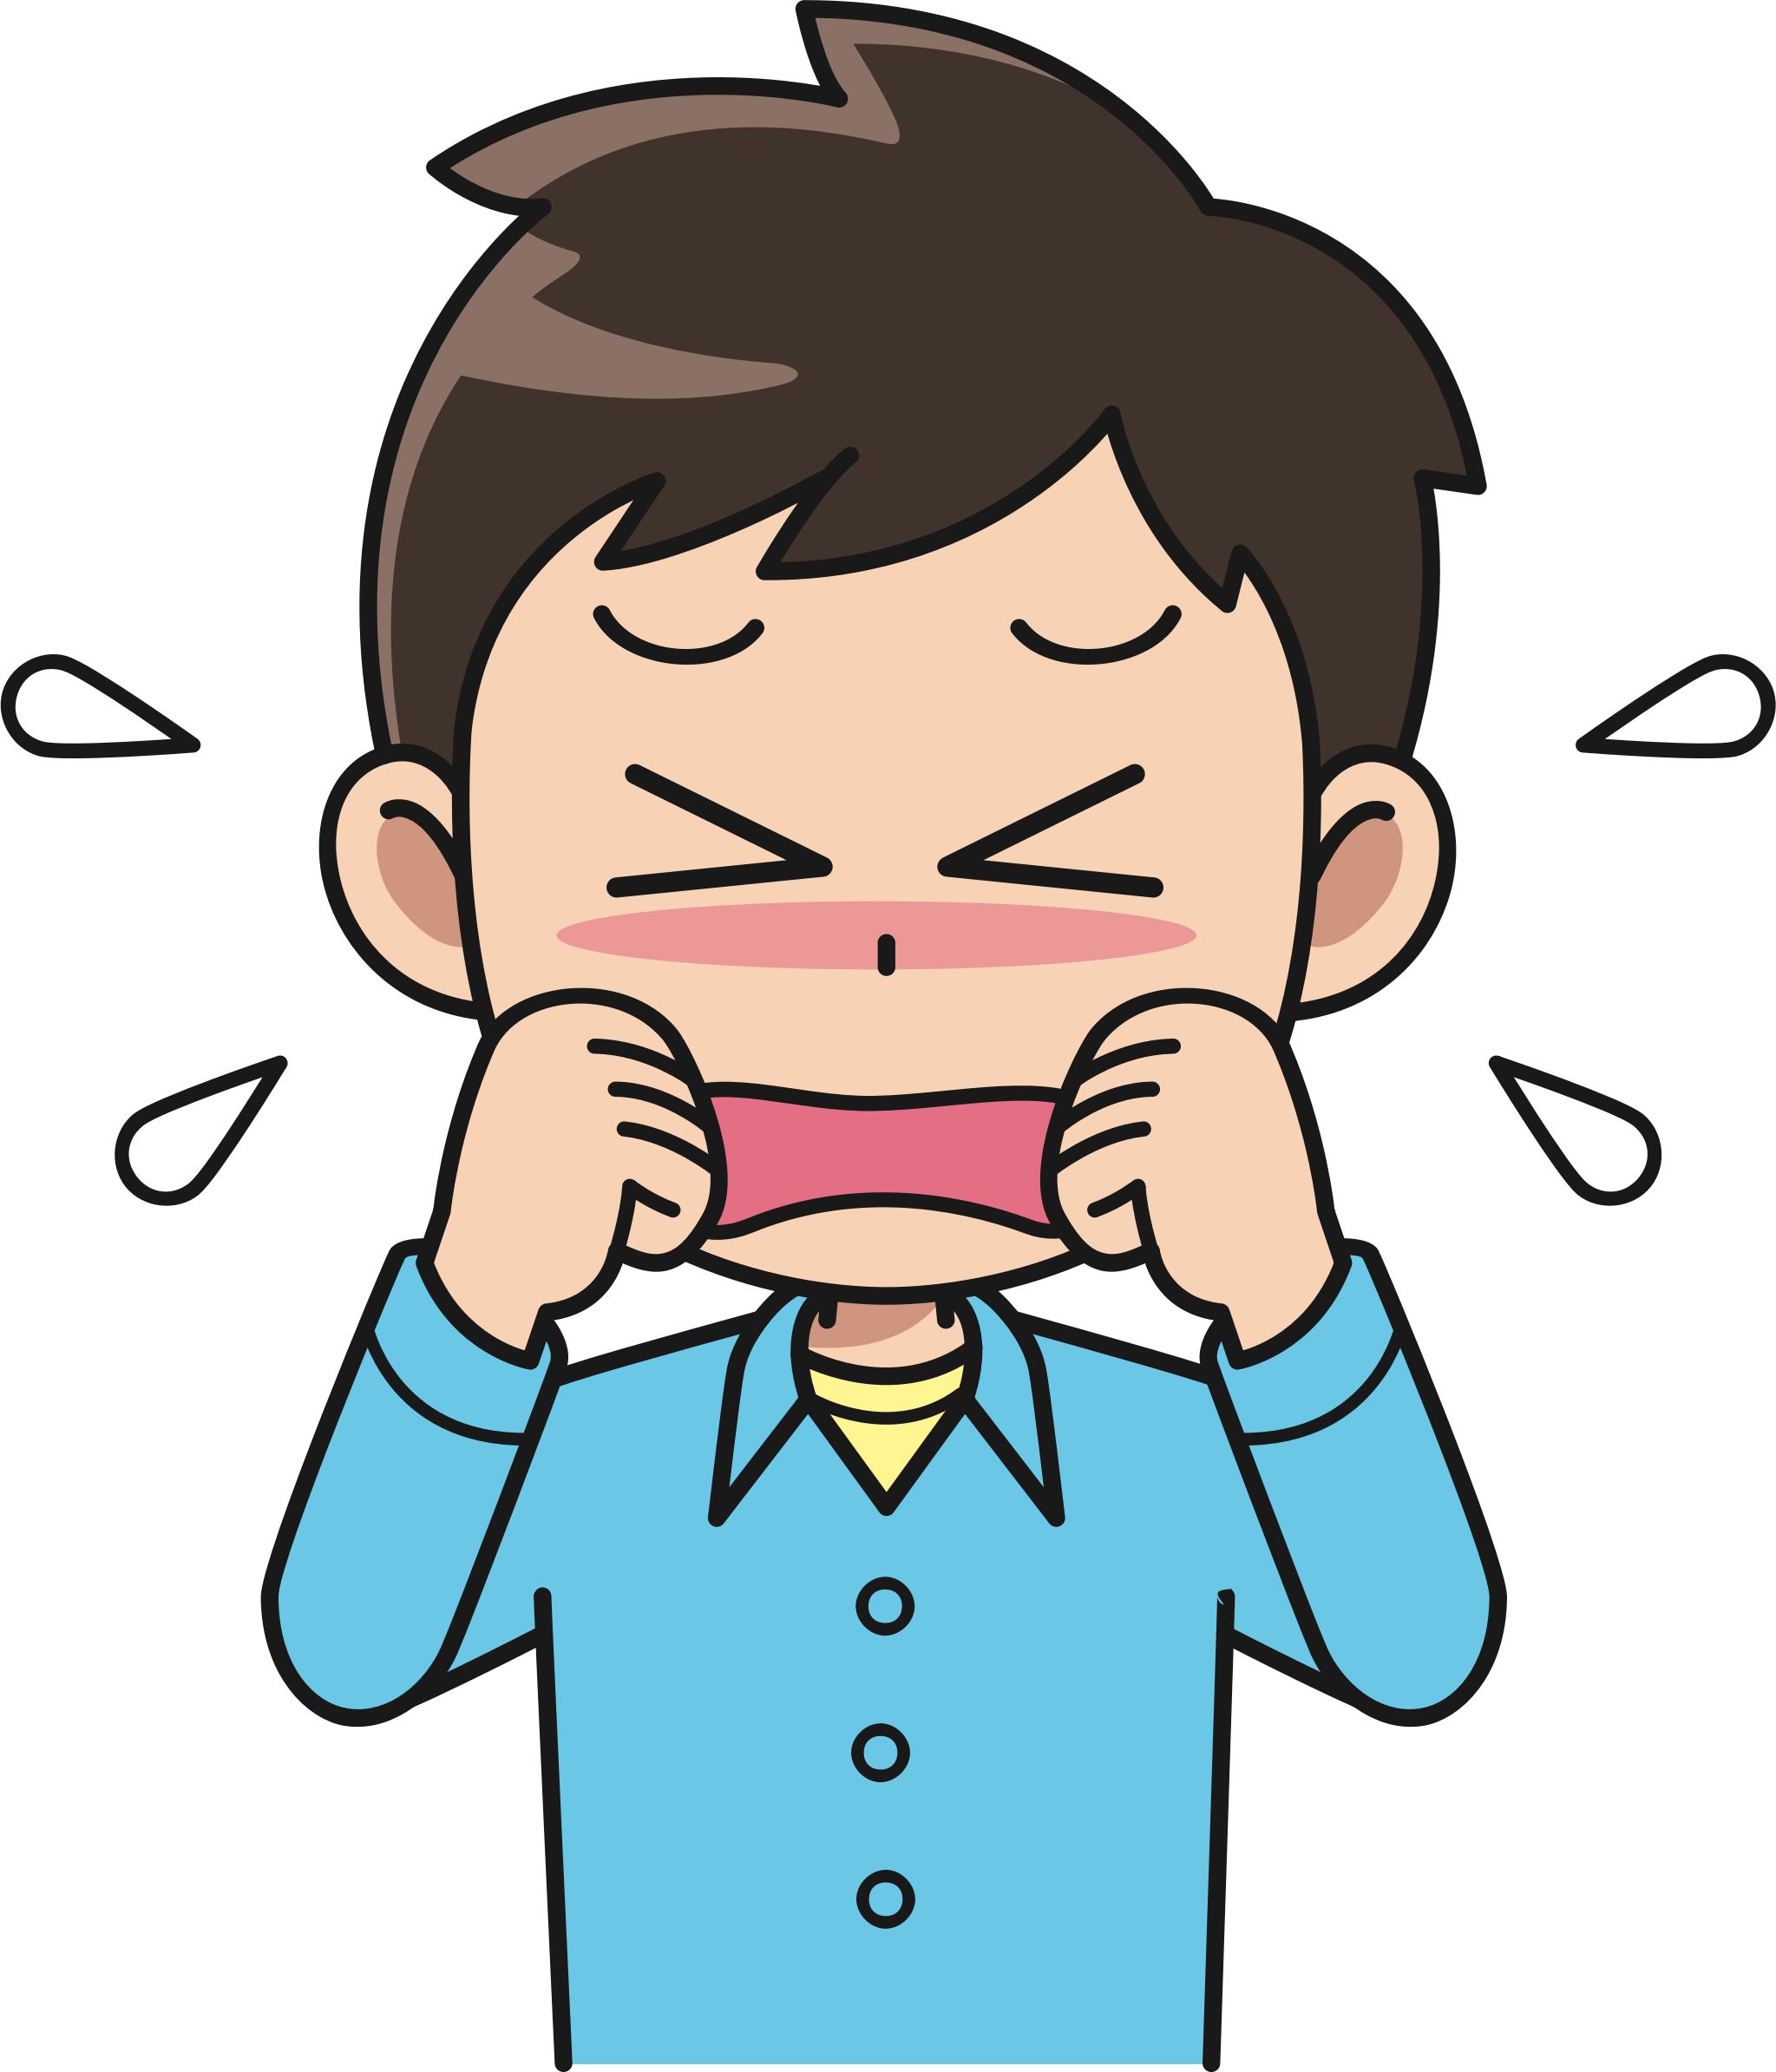 Crying clipart. Male big image png